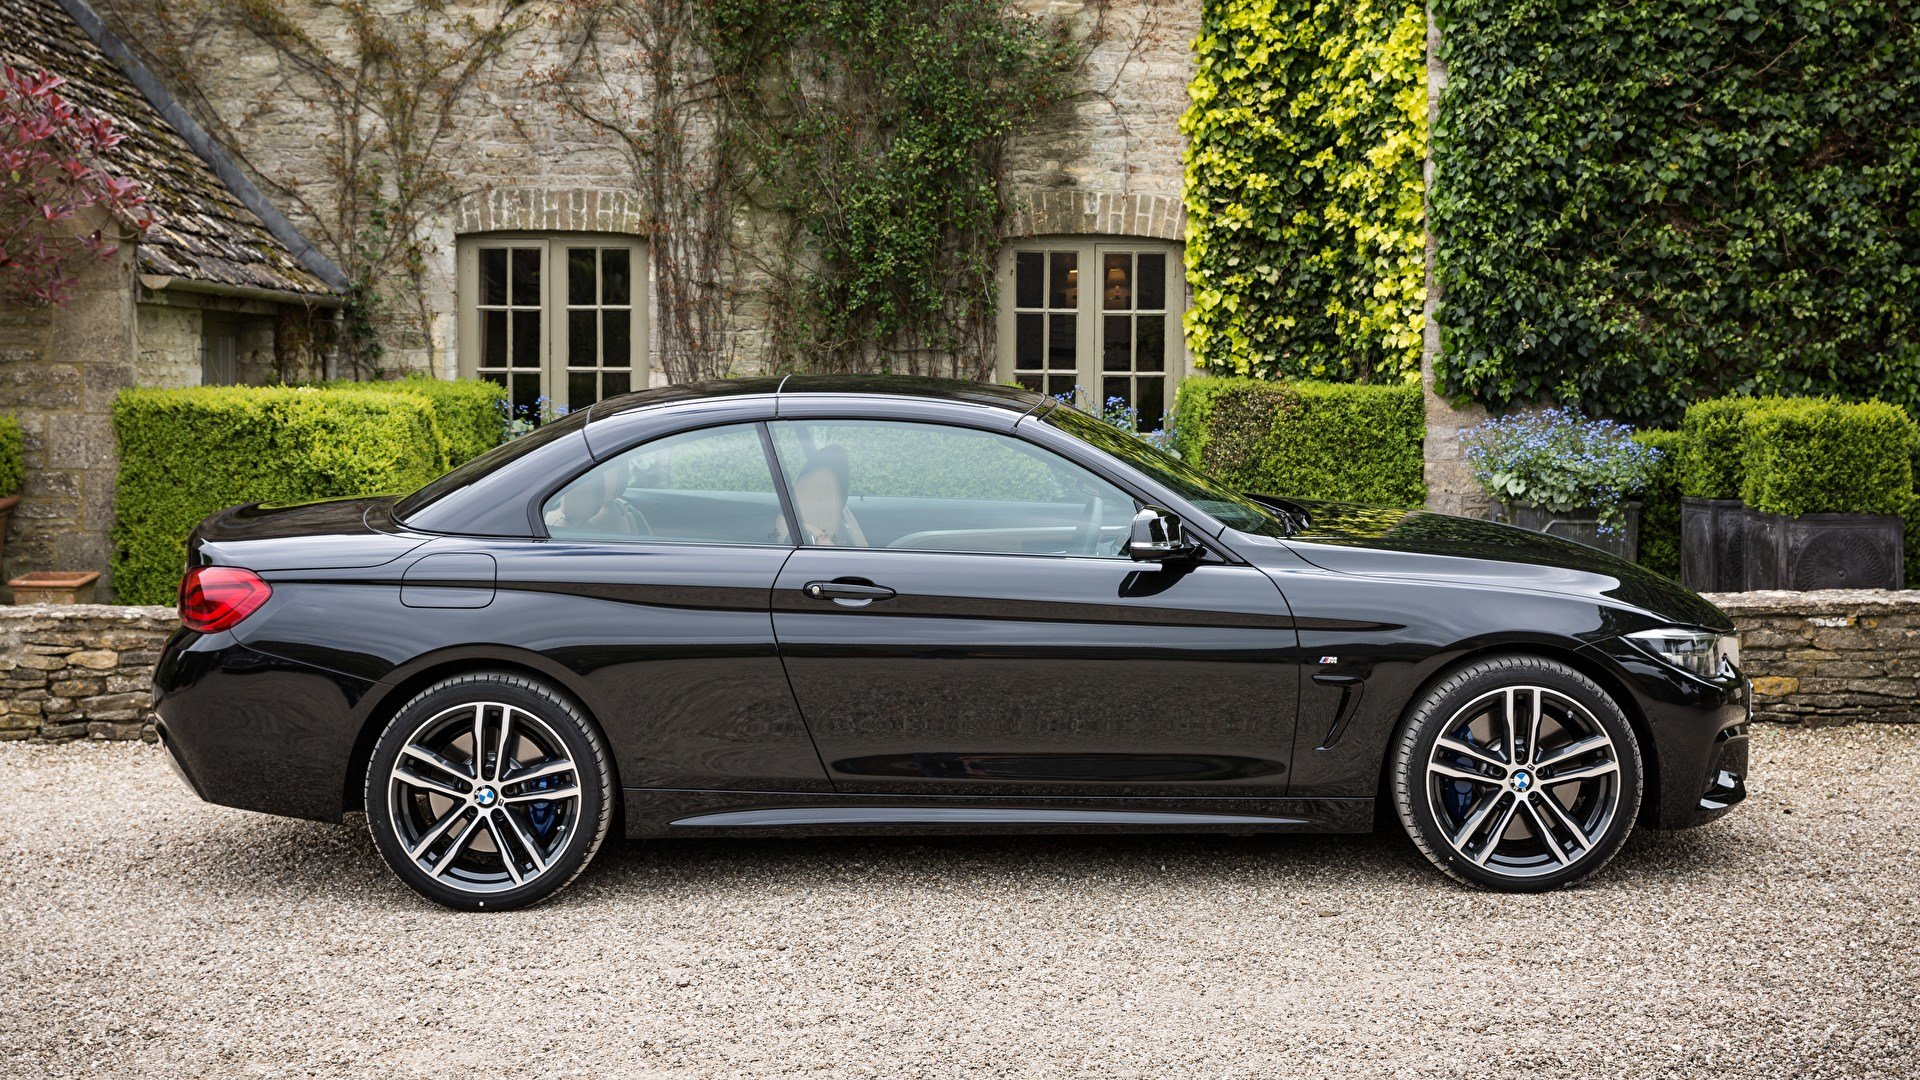 Latest Photos Bmw 2017 435D Xdrive Cabrio M Sport Package Black Free Download